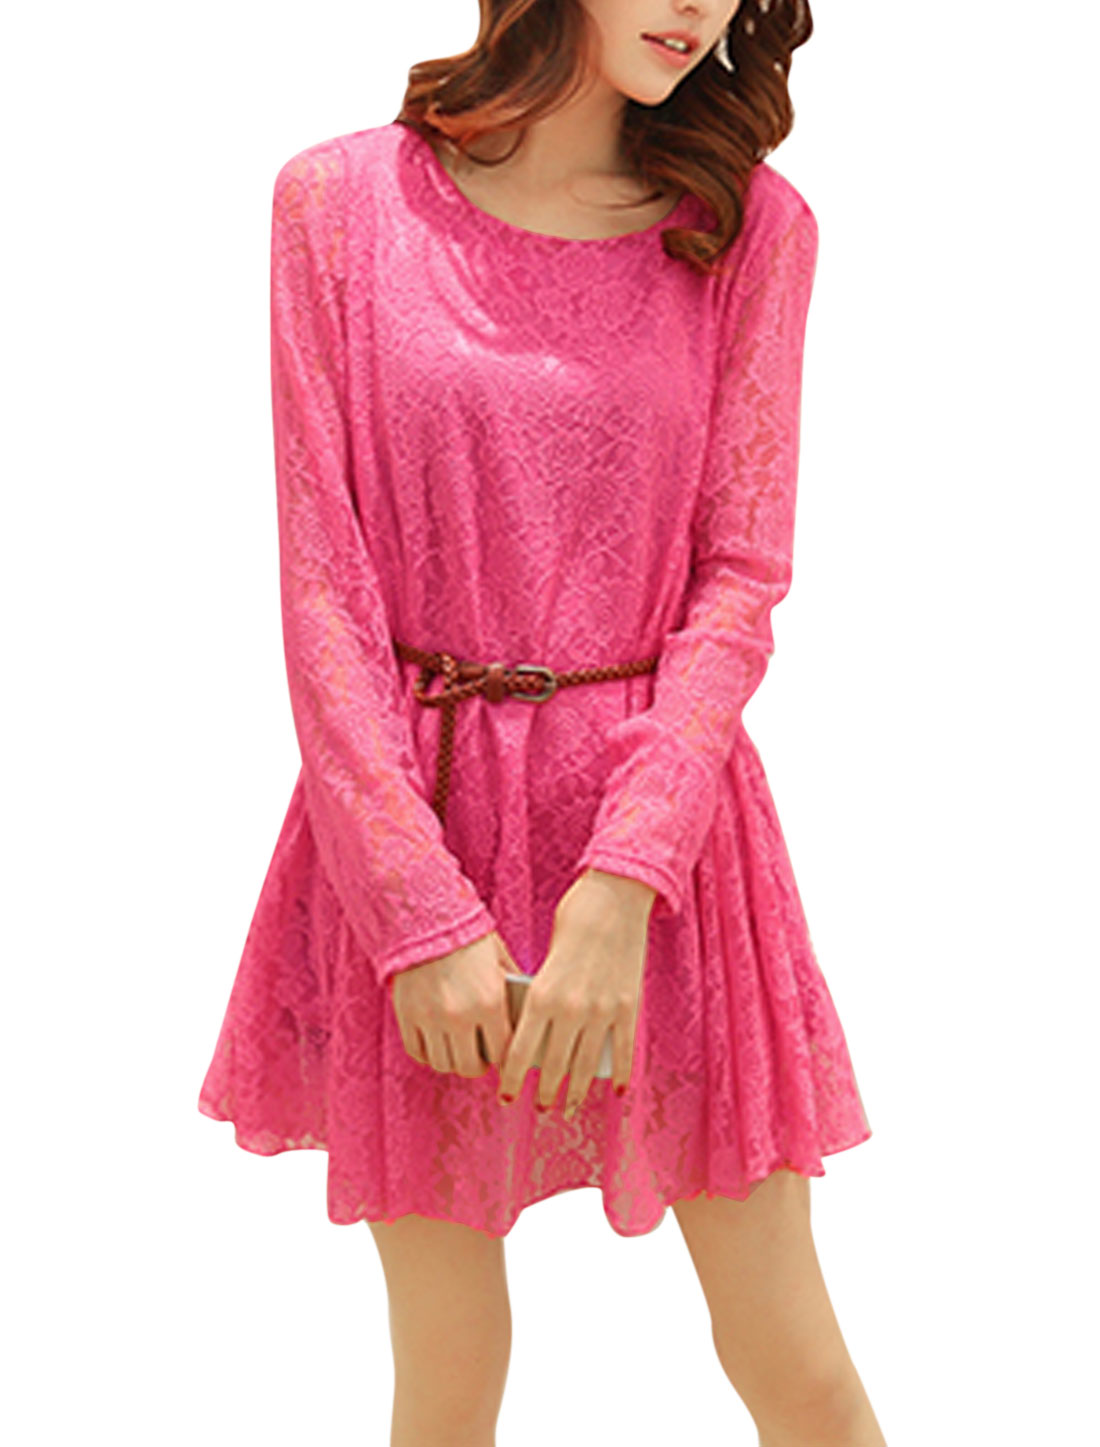 Lady Round Neck Long Sleeve Lace Lining Dress w Belt Fuchsia S